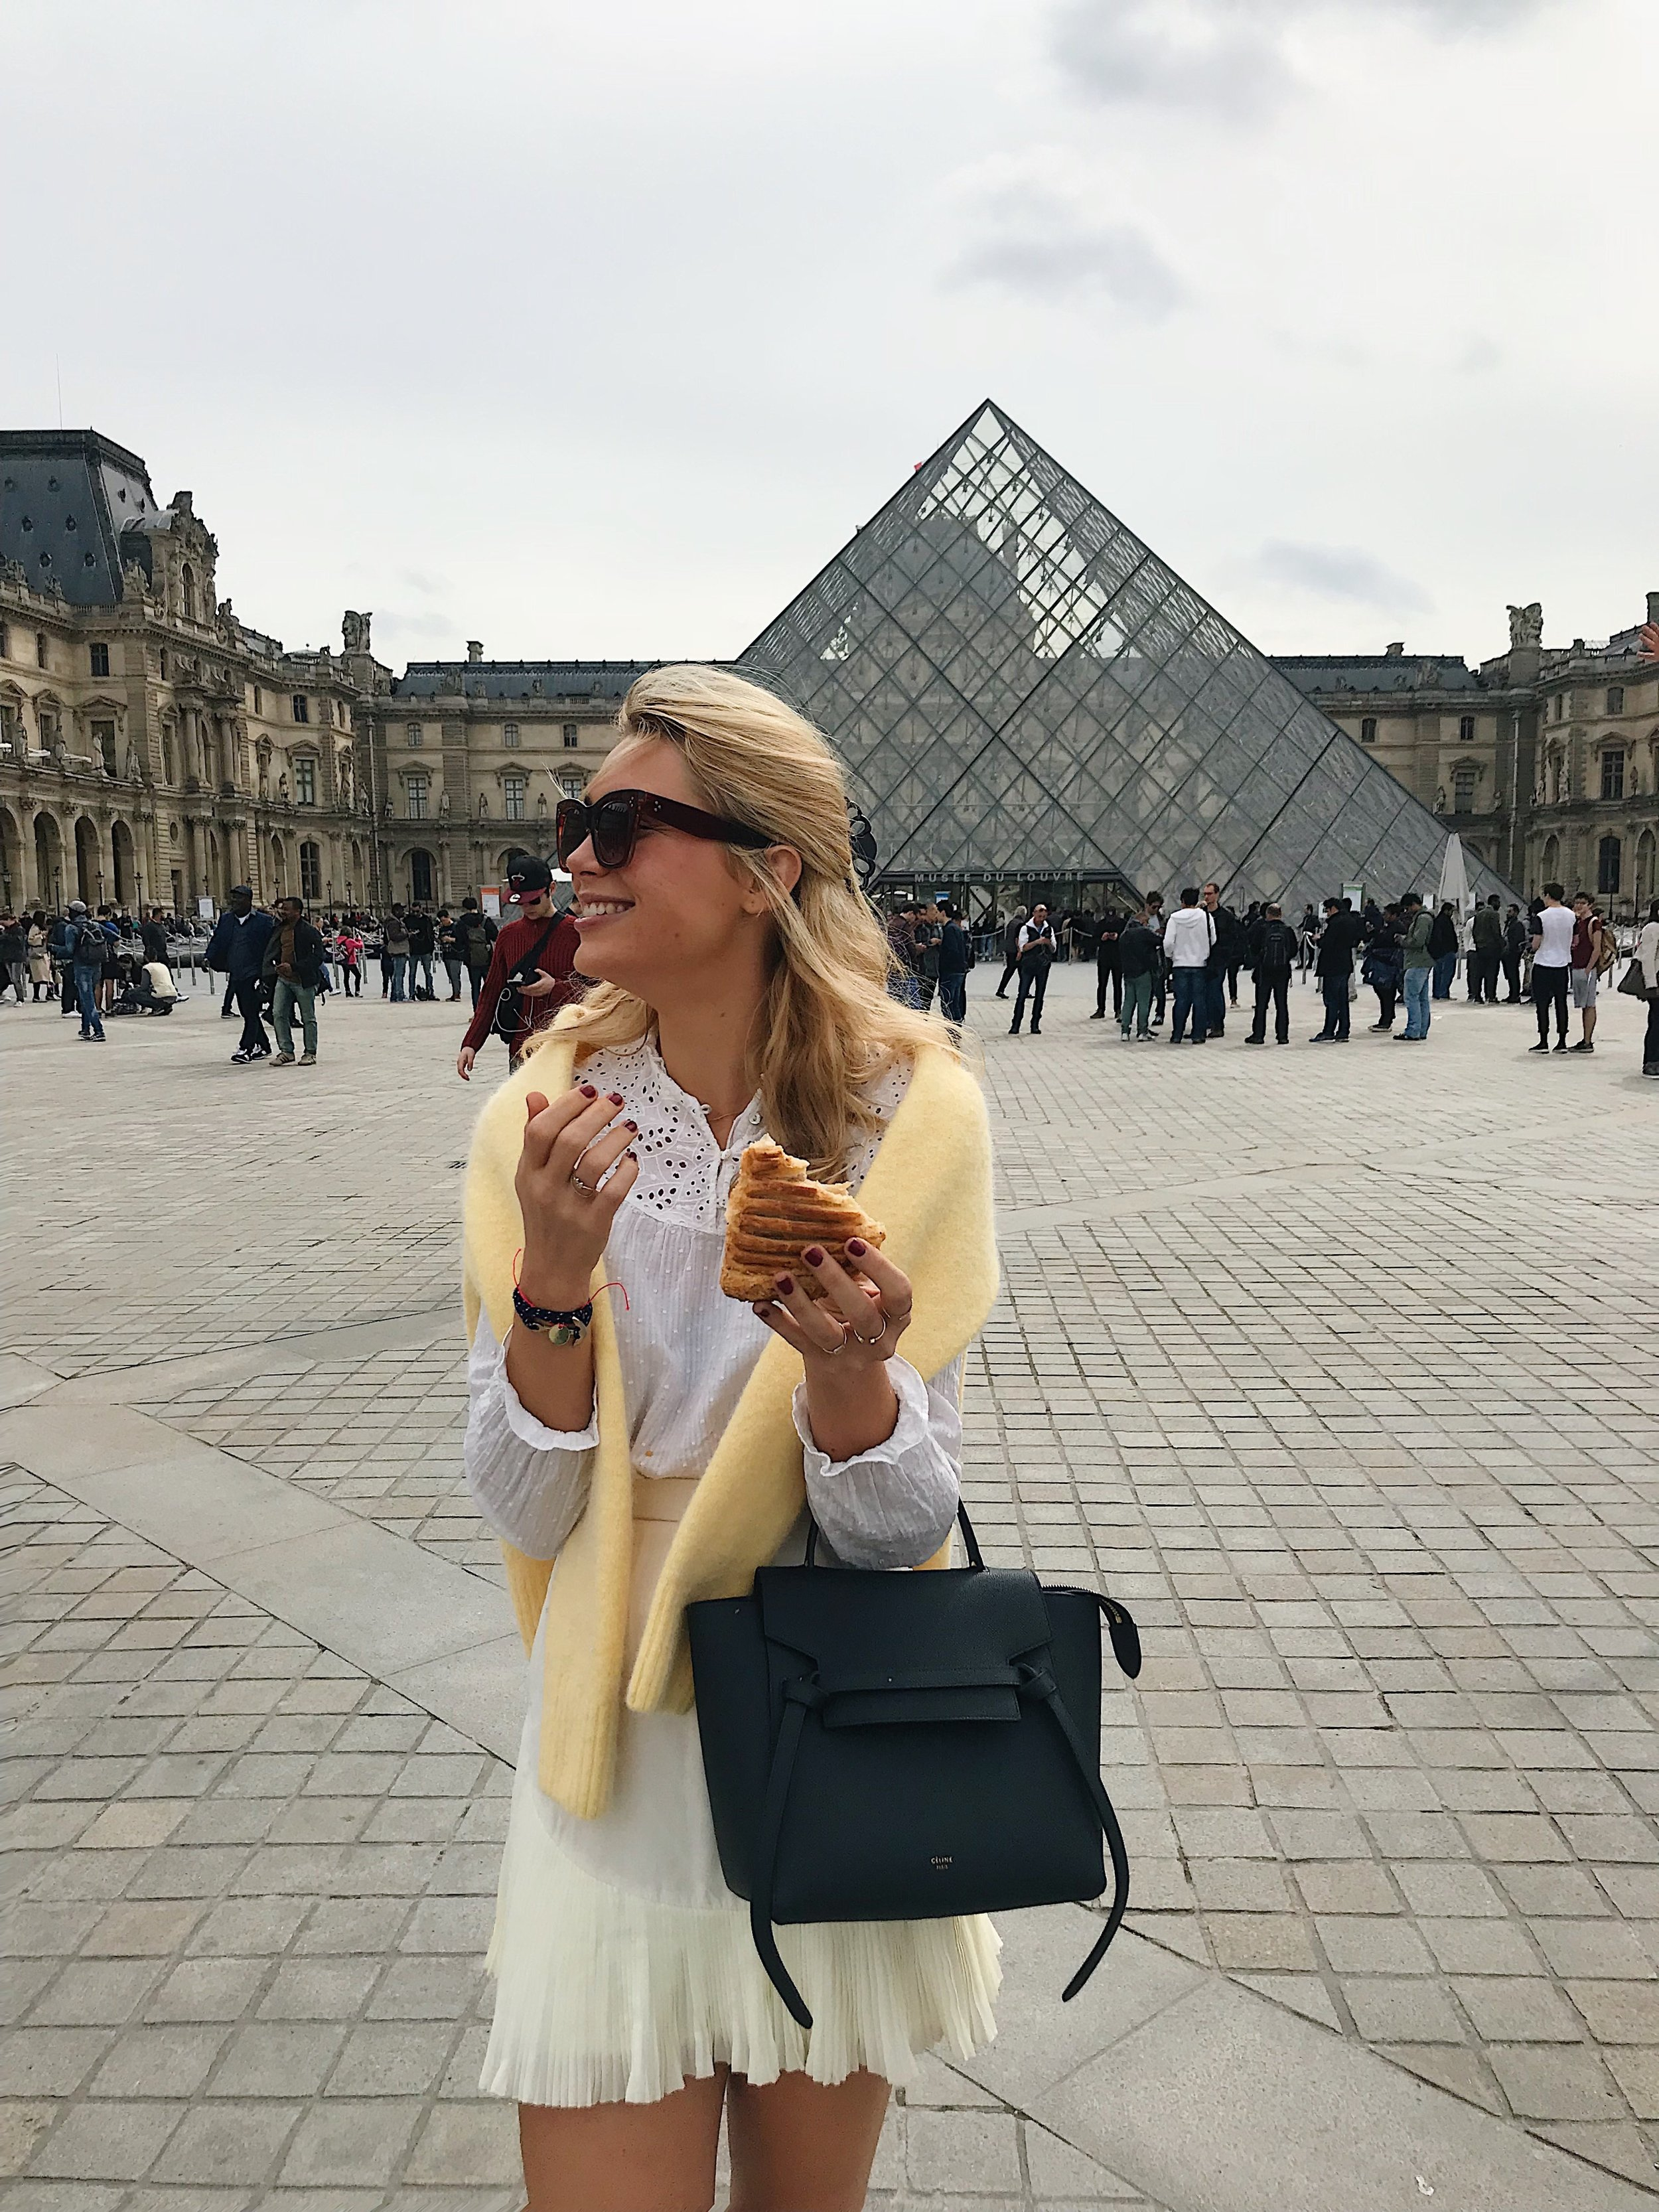 Louvre Museum   Rue de Rivoli, 75001 Paris  Ah, the Louvre, things really heat up around this ever popular tourist gallery. Be sure to go throughout the week and avoid it altogether on school holidays as the crowds deter. Opt for some of the lush parks that surround nearby.